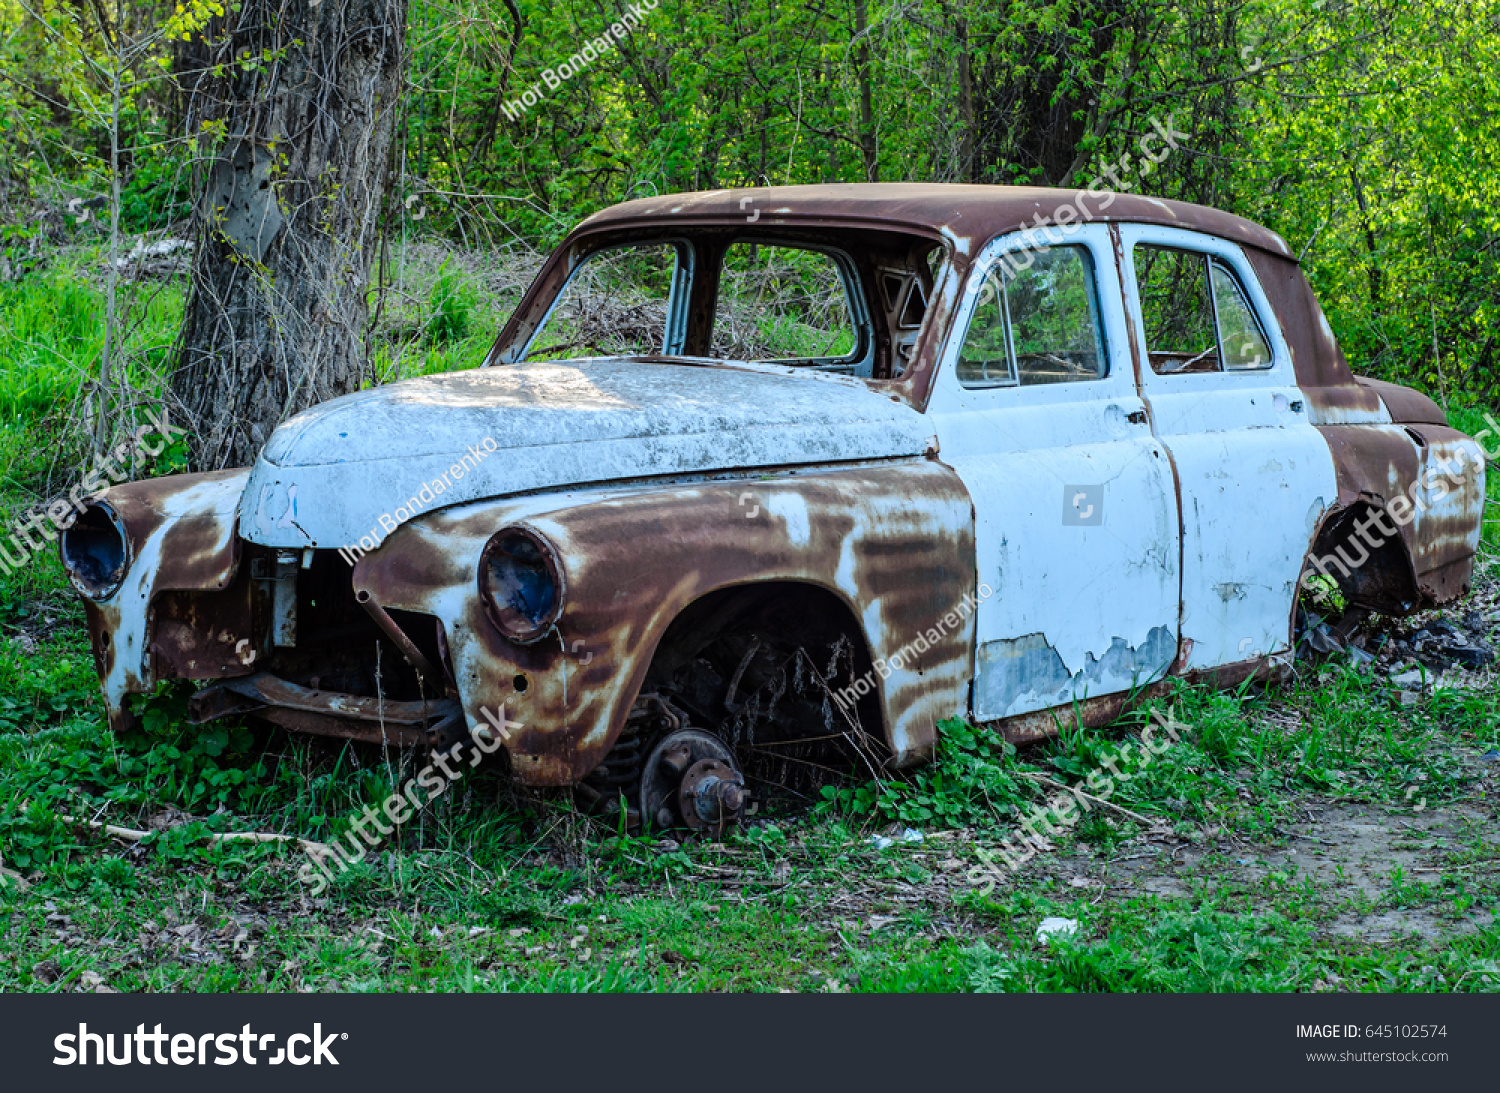 Old Rusty Car Body On Ground Stock Photo 645102574 - Shutterstock